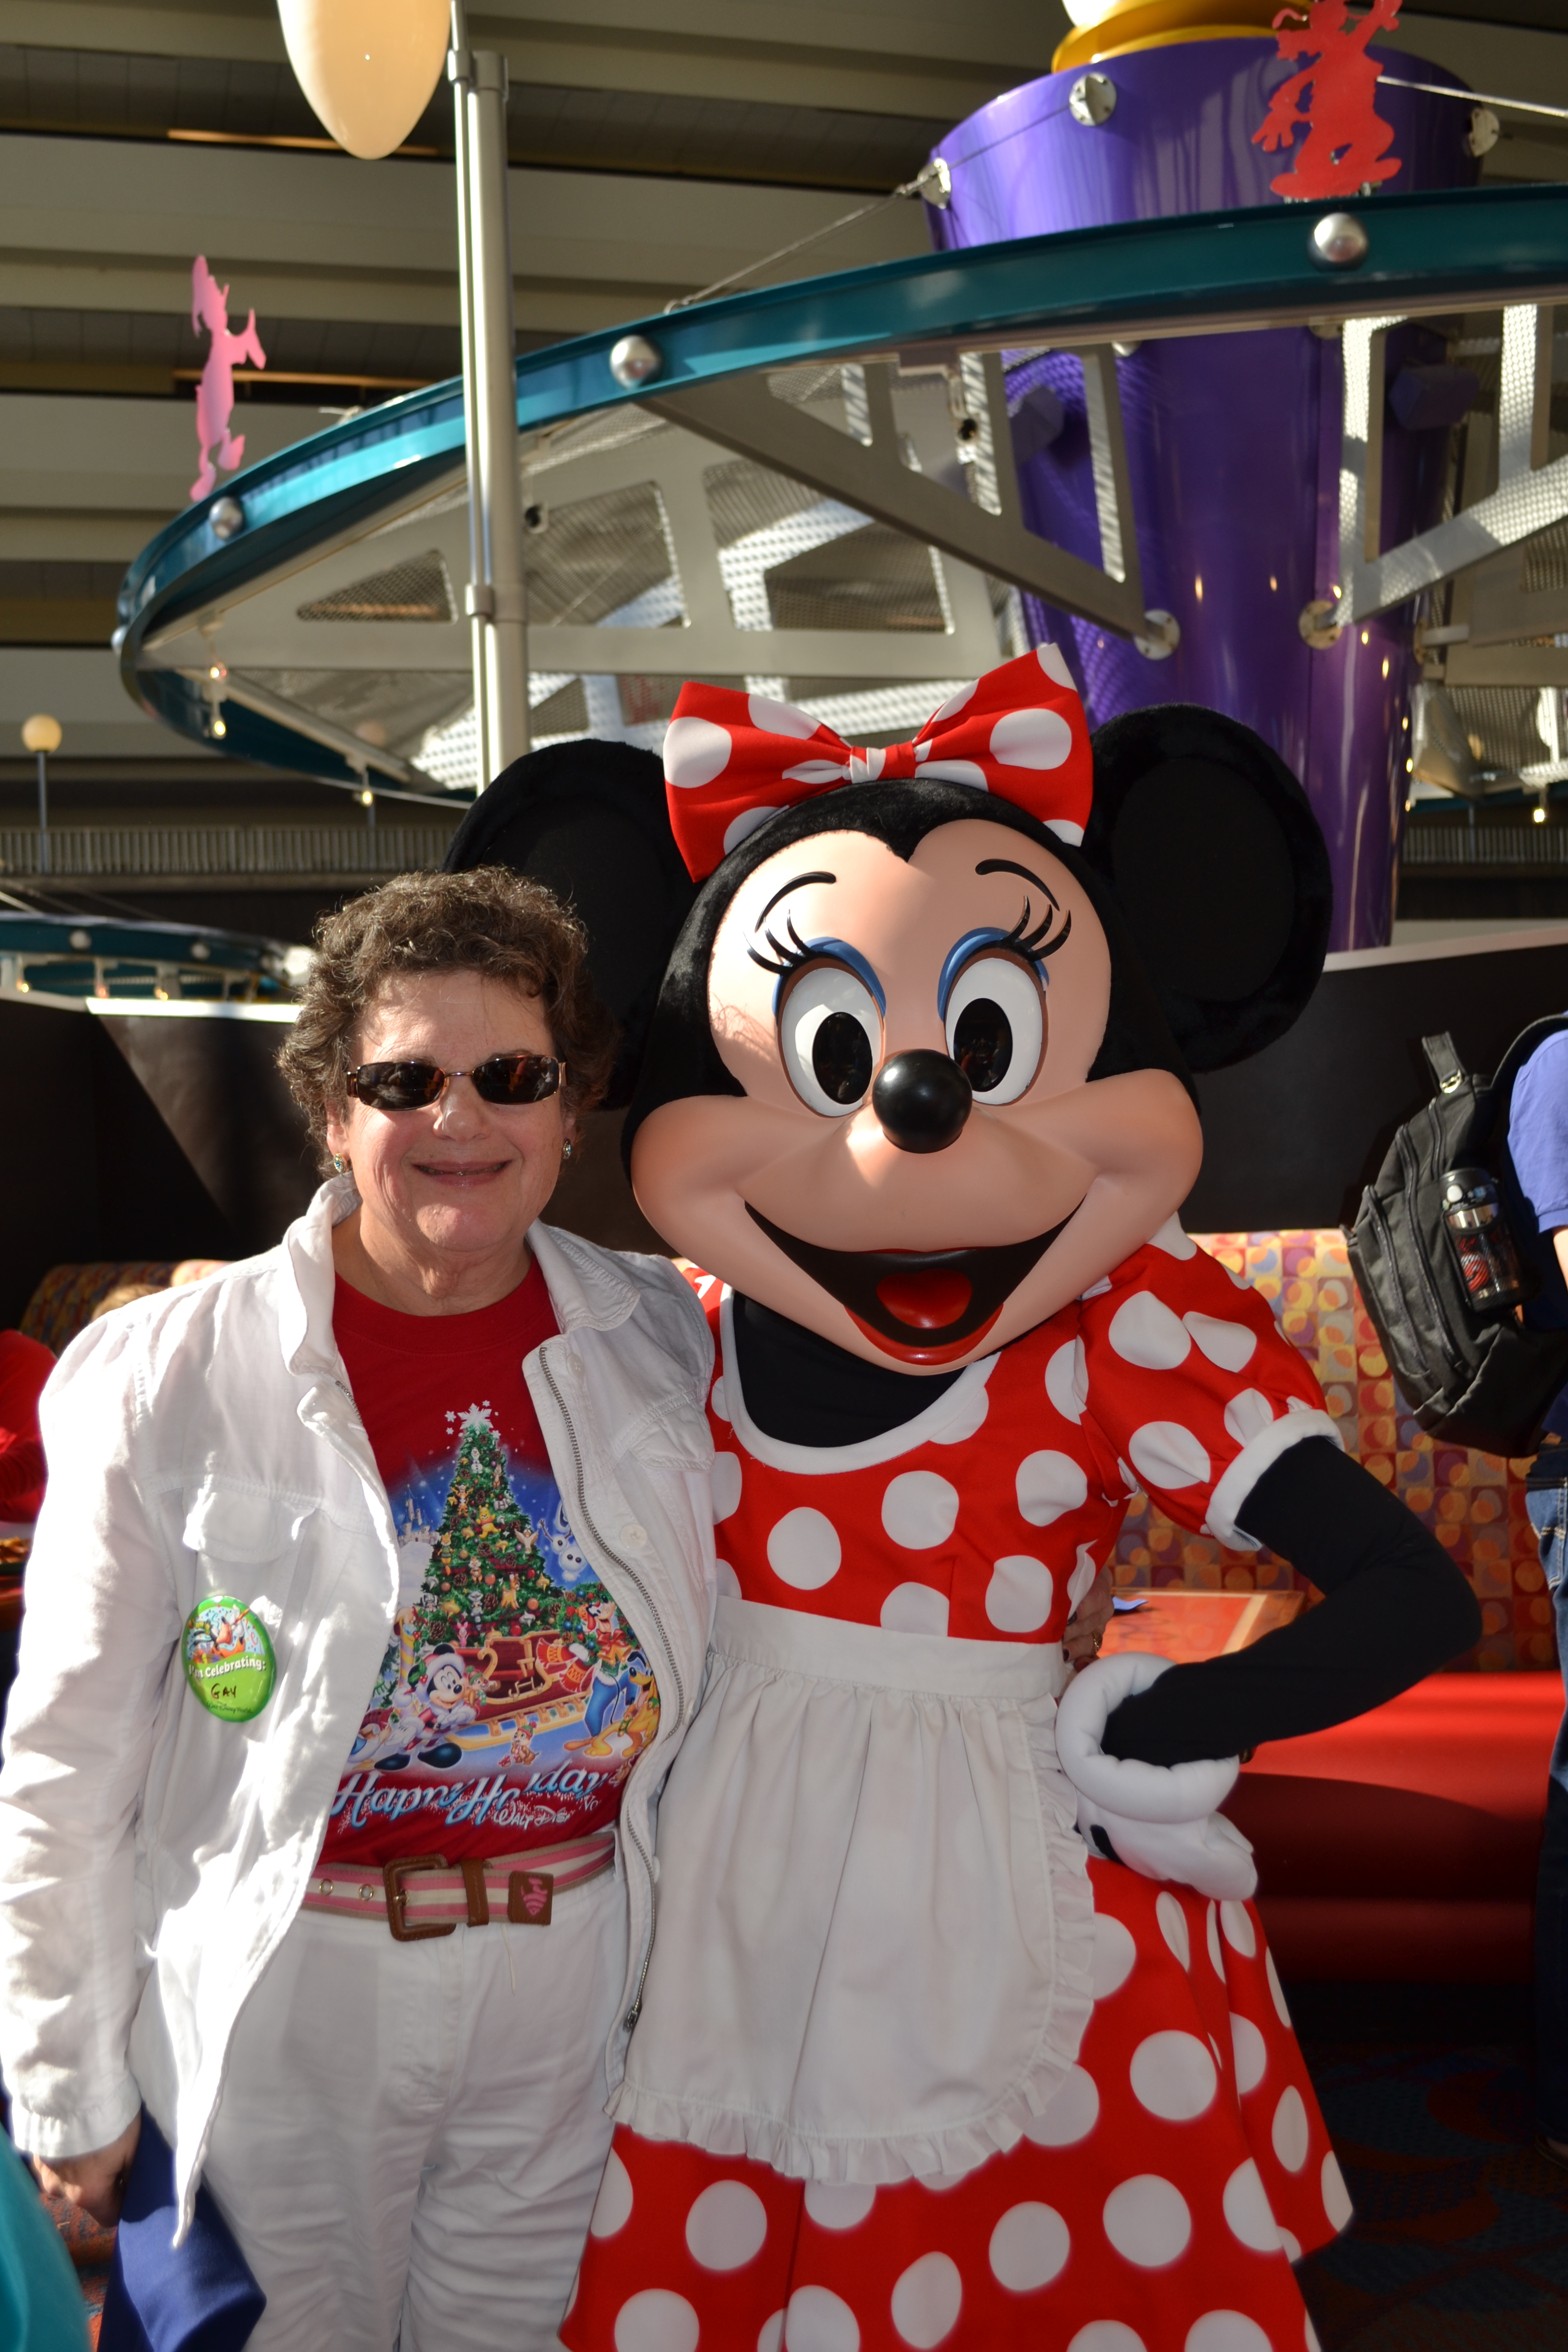 Vacationer posing with Minnie Mouse